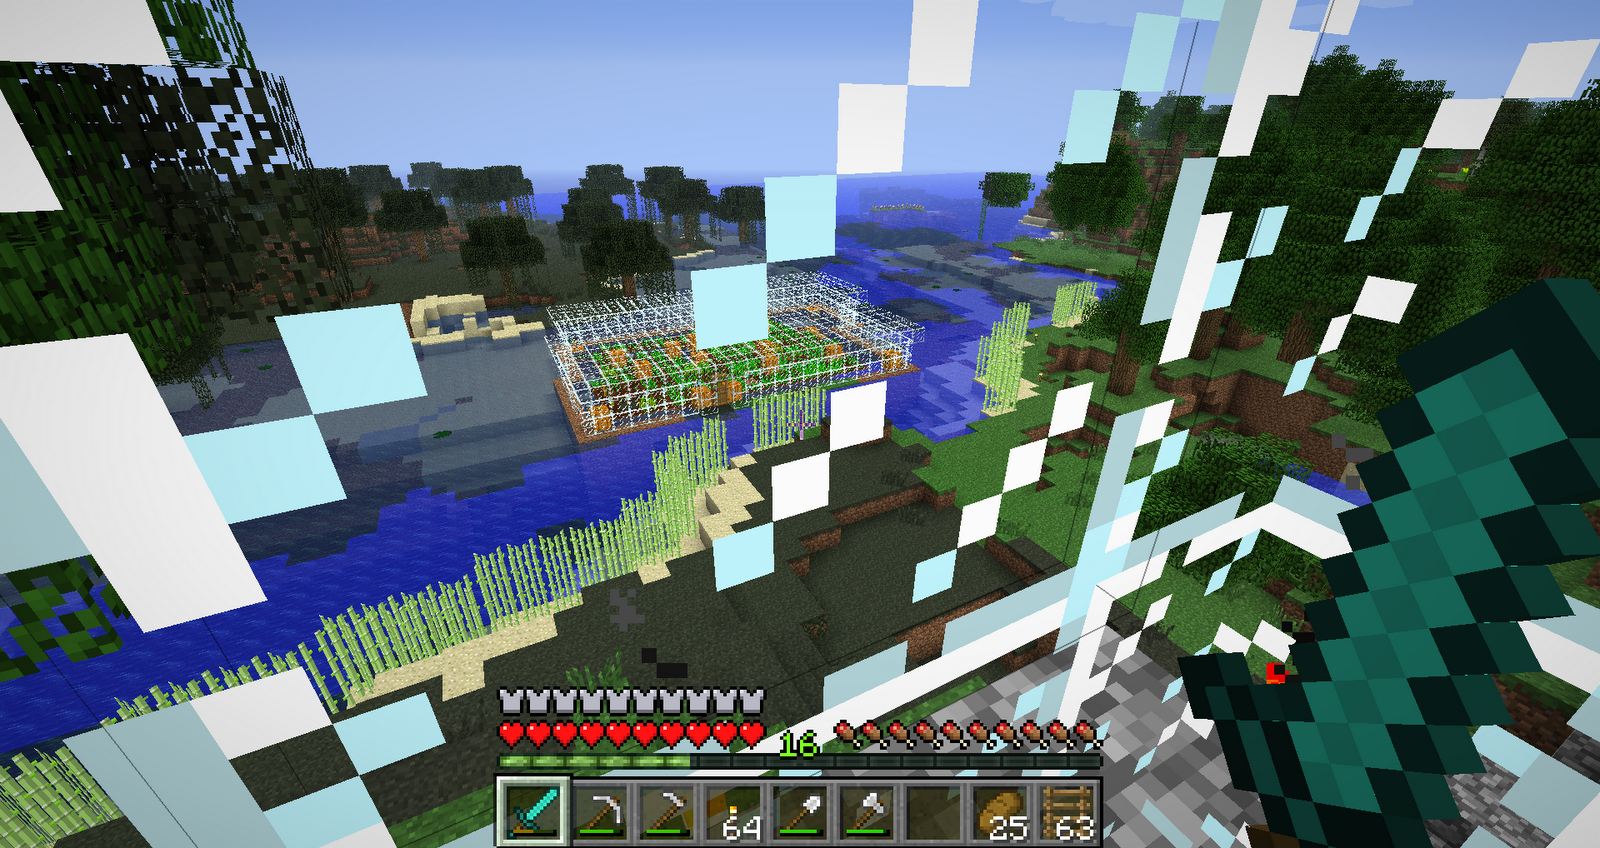 Minecraft greenhouse.  Built by surrounding an island with glass.  Safe farming at night, no monsters can get in and it is too light for them to spawn.